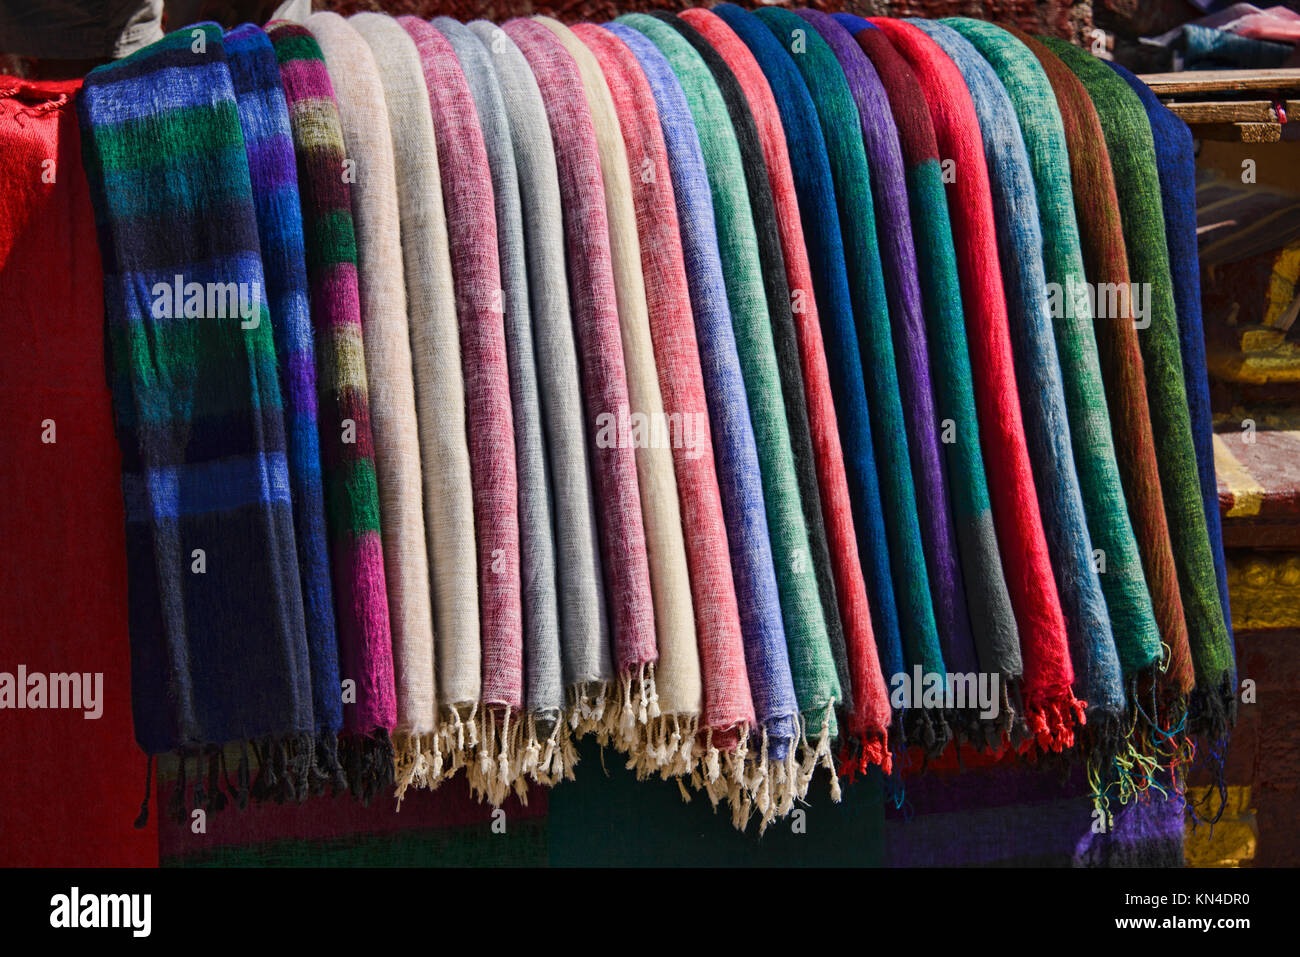 Shawls Scarves Stock Photos & Shawls Scarves Stock Images